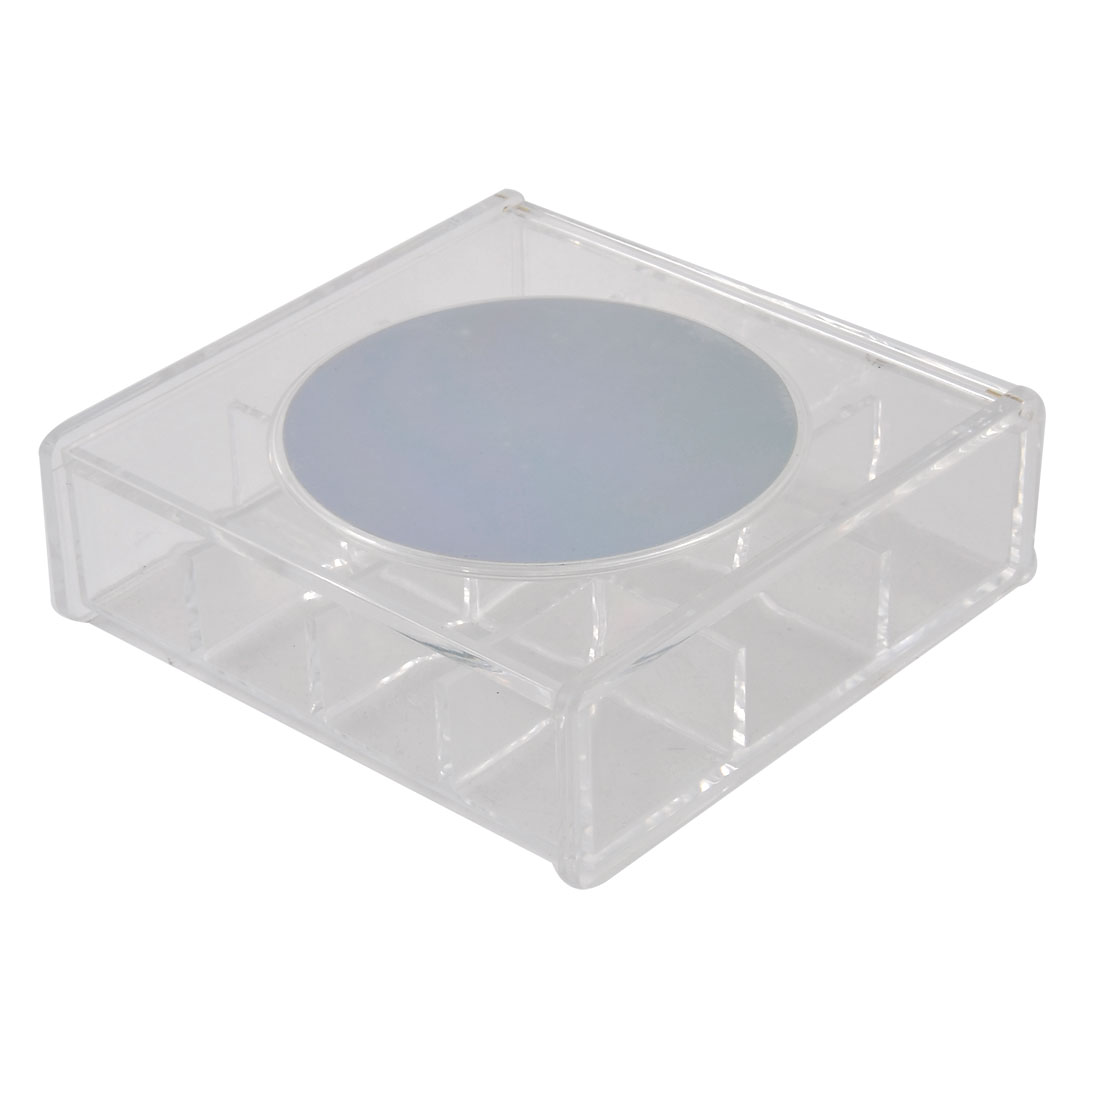 Bathroom Dresser Acrylic 12 Compartments Cosmetics Organizer Makeup Case Box Clear